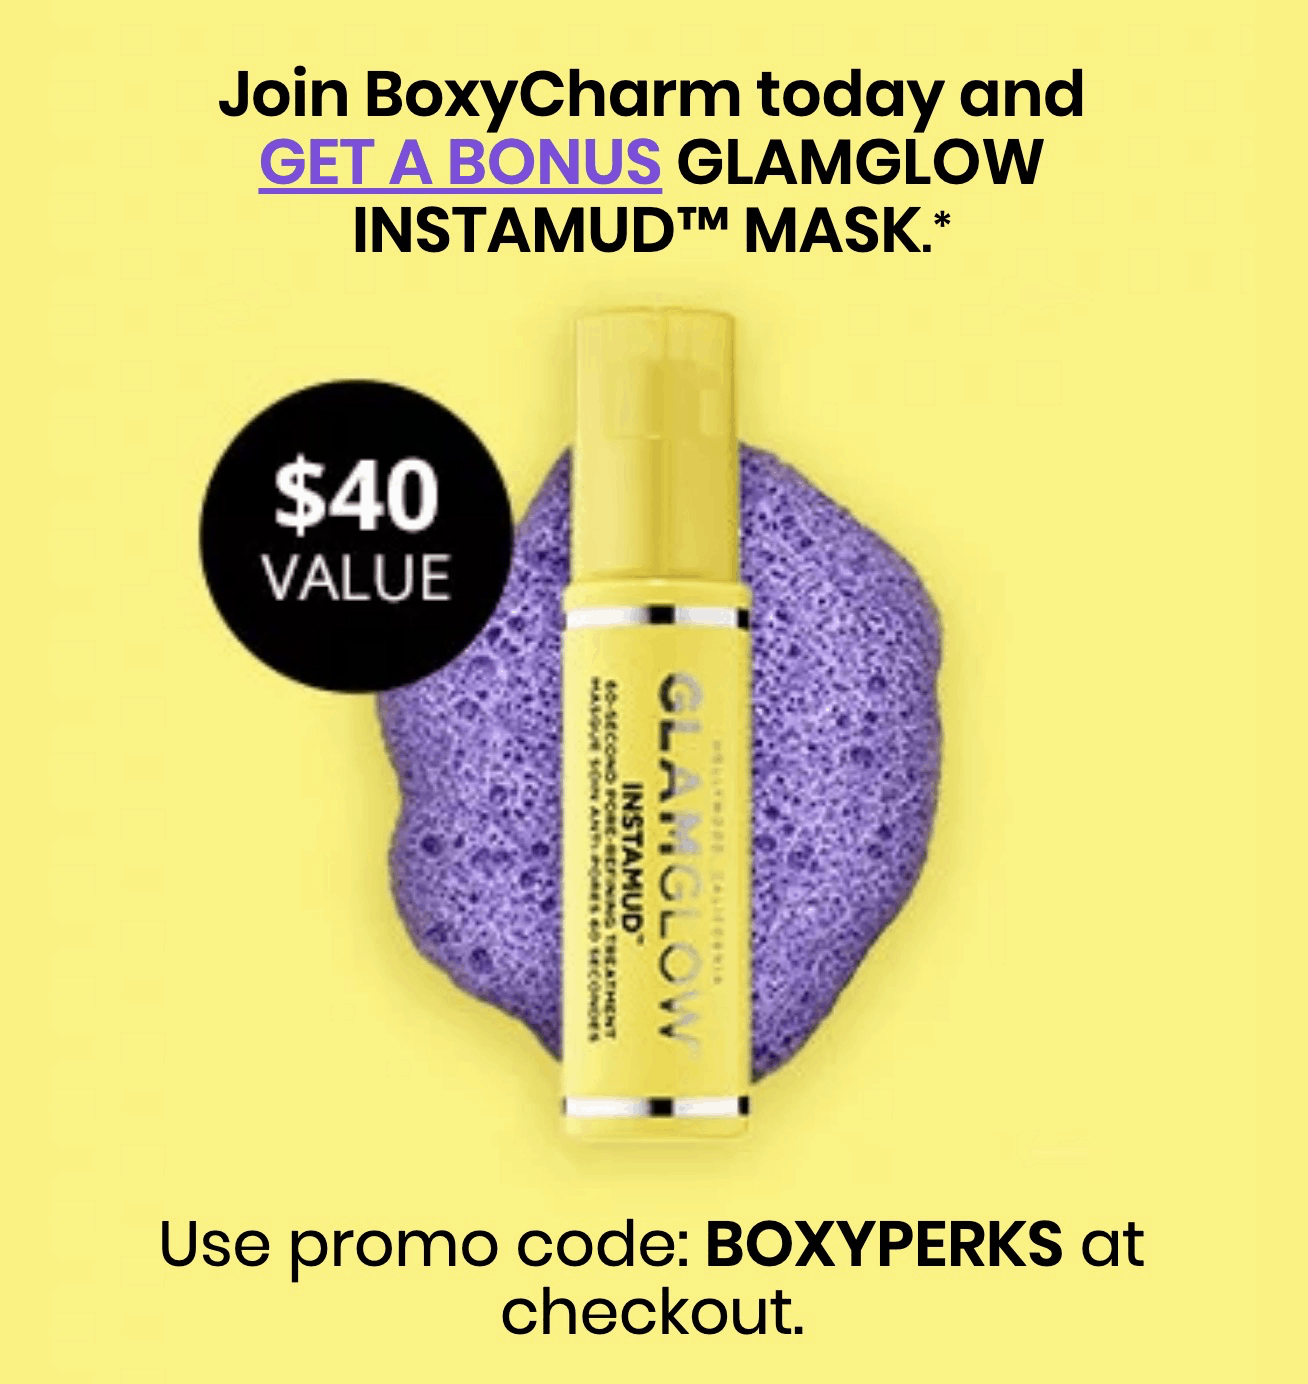 LAST CHANCE for Rare BOXYCHARM Coupon: FREE $40 value GLAMGLOW Instamud Mask!